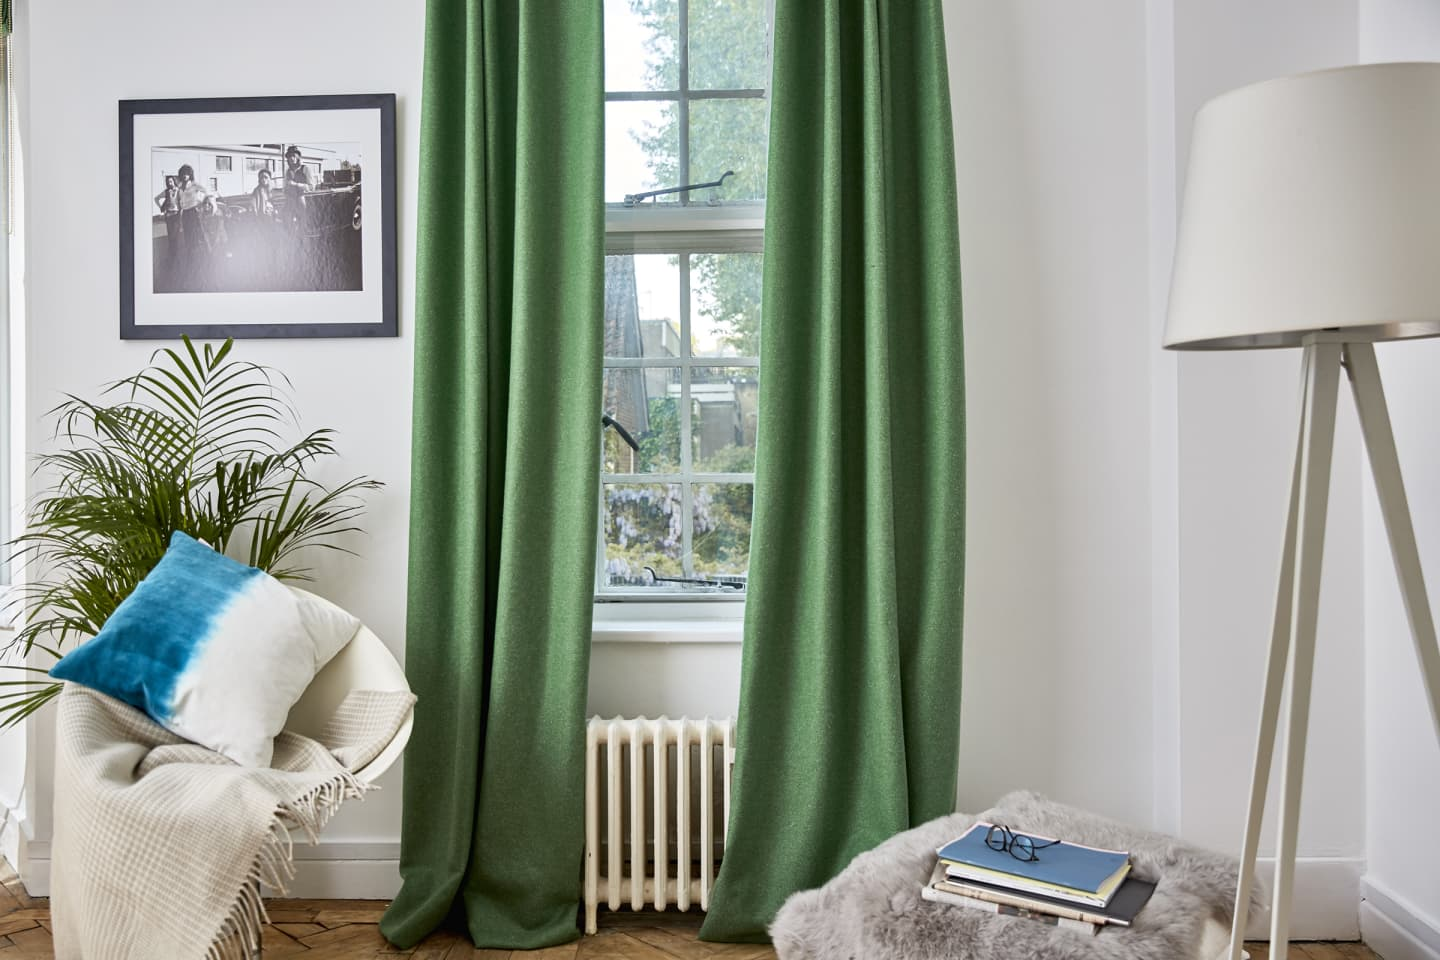 Green wool blinds in a white living room